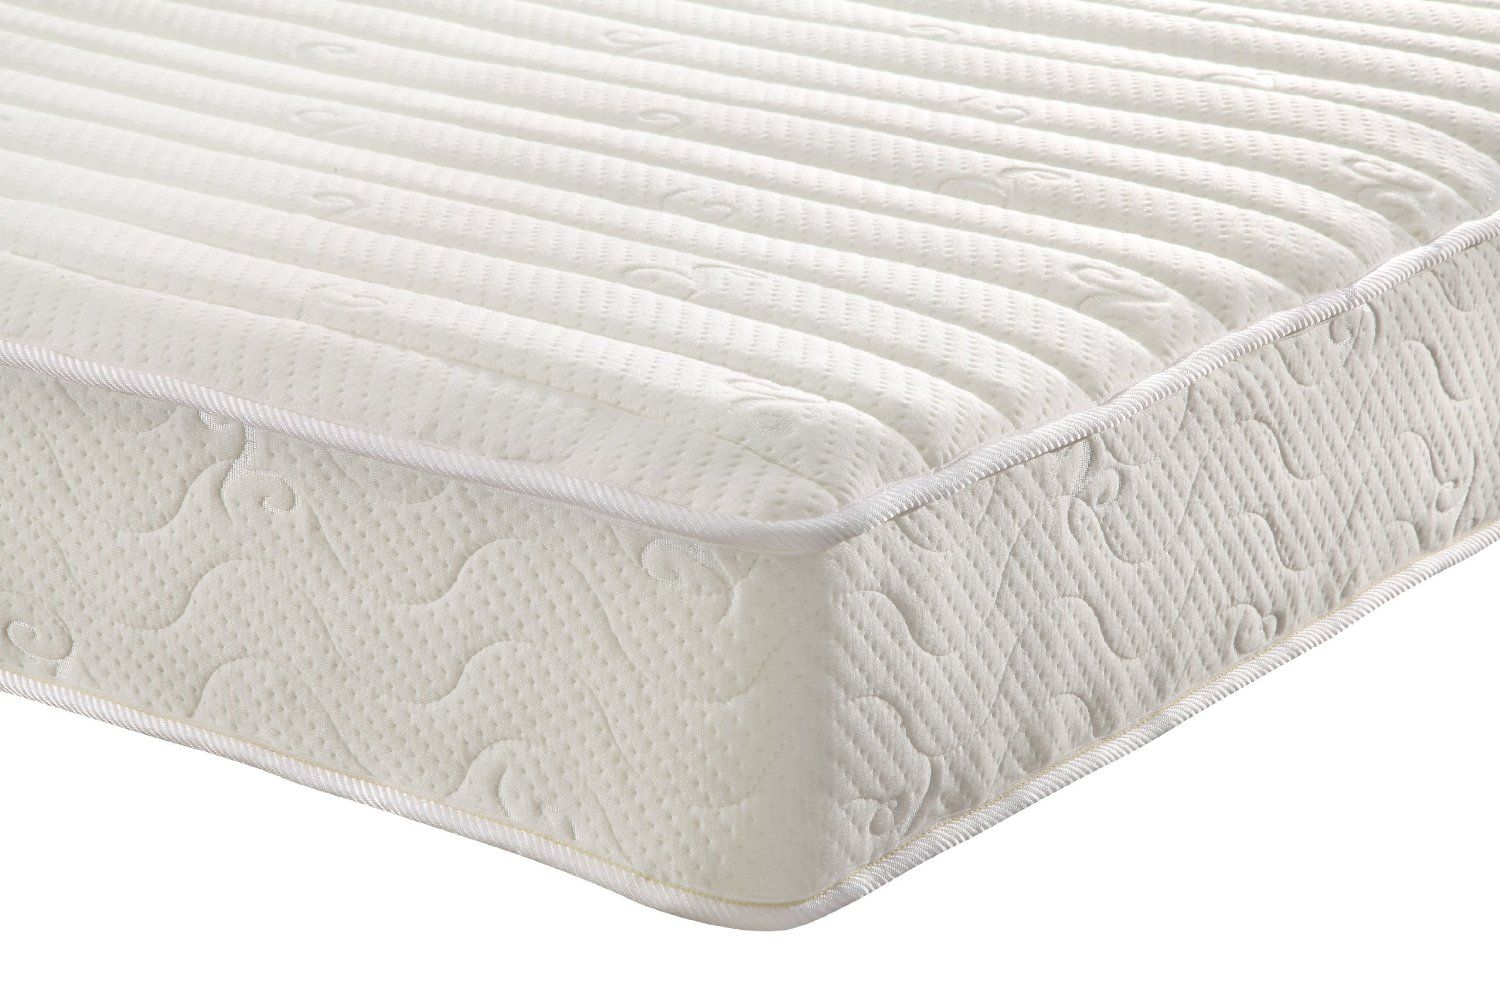 Top 10 Best Mattress for Side Sleepers Reviews